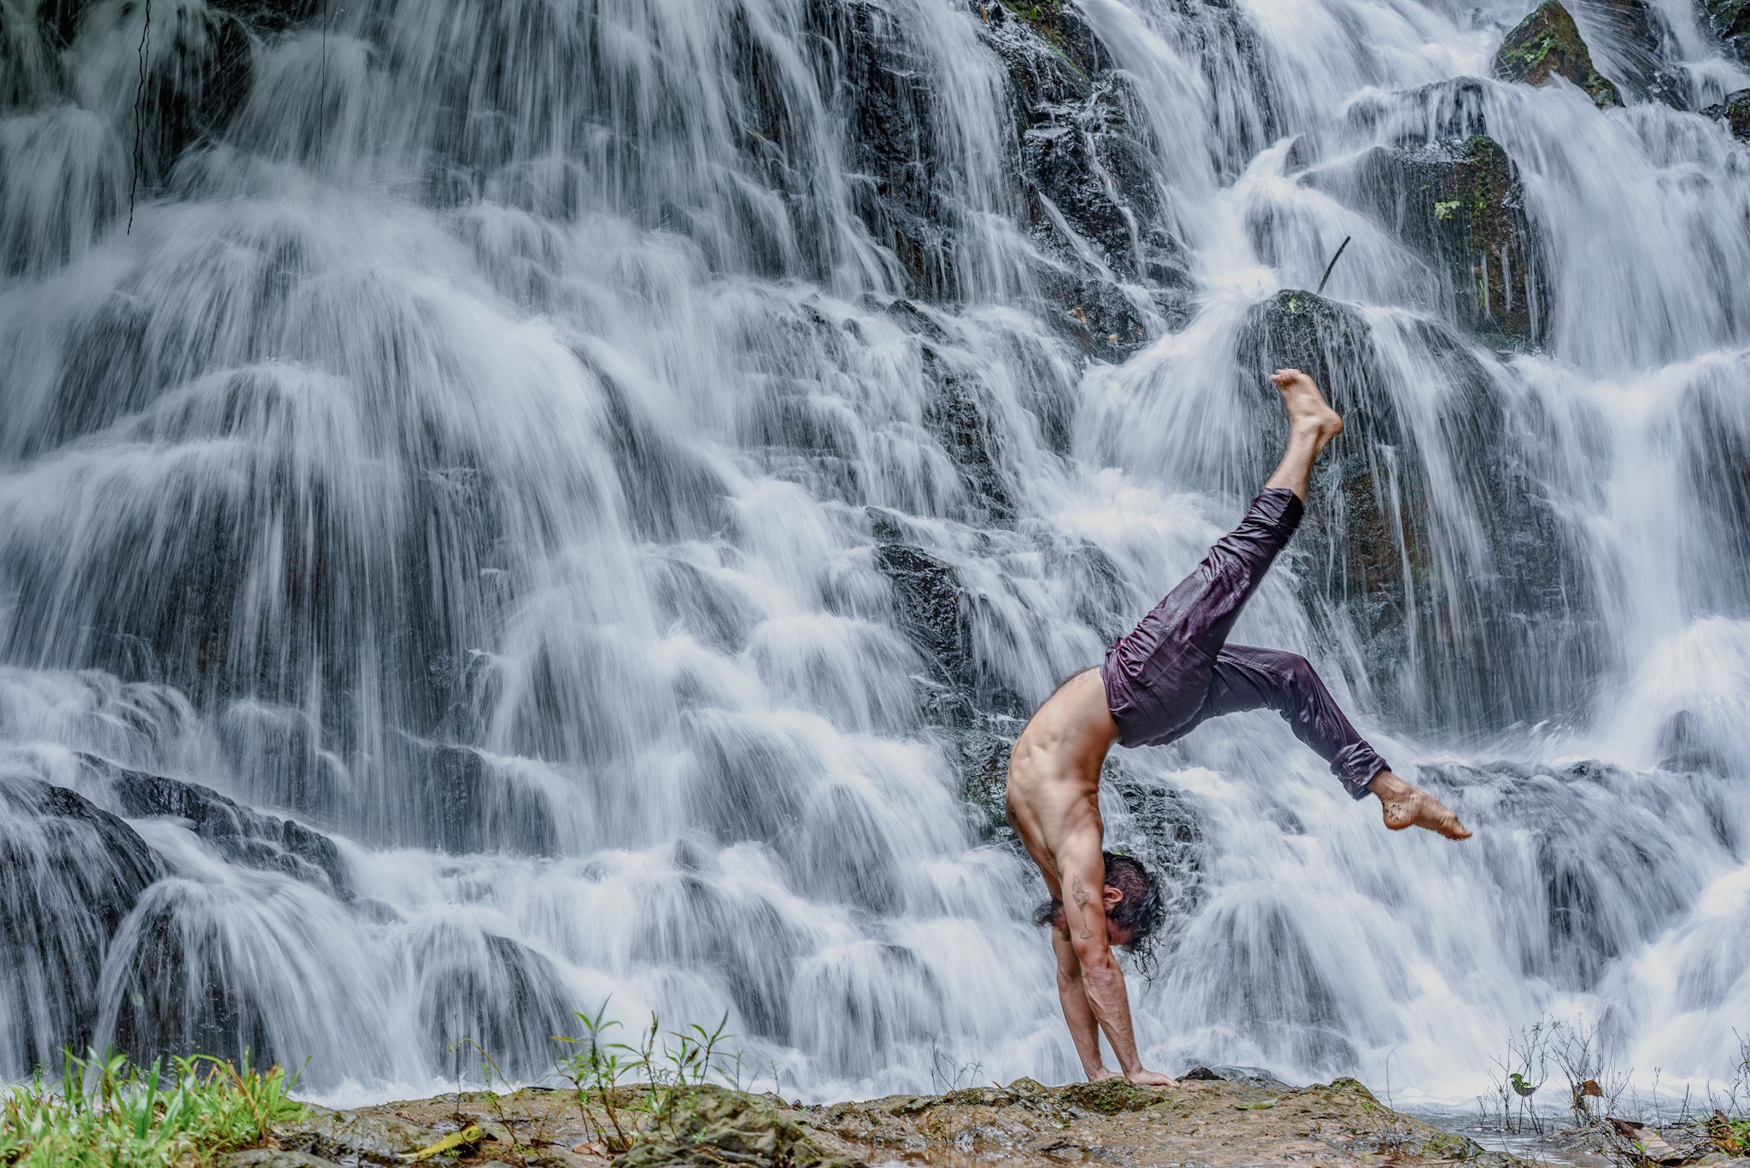 Yoga-Inspired-Practices-Photography-Costa-Rica-12.jpg